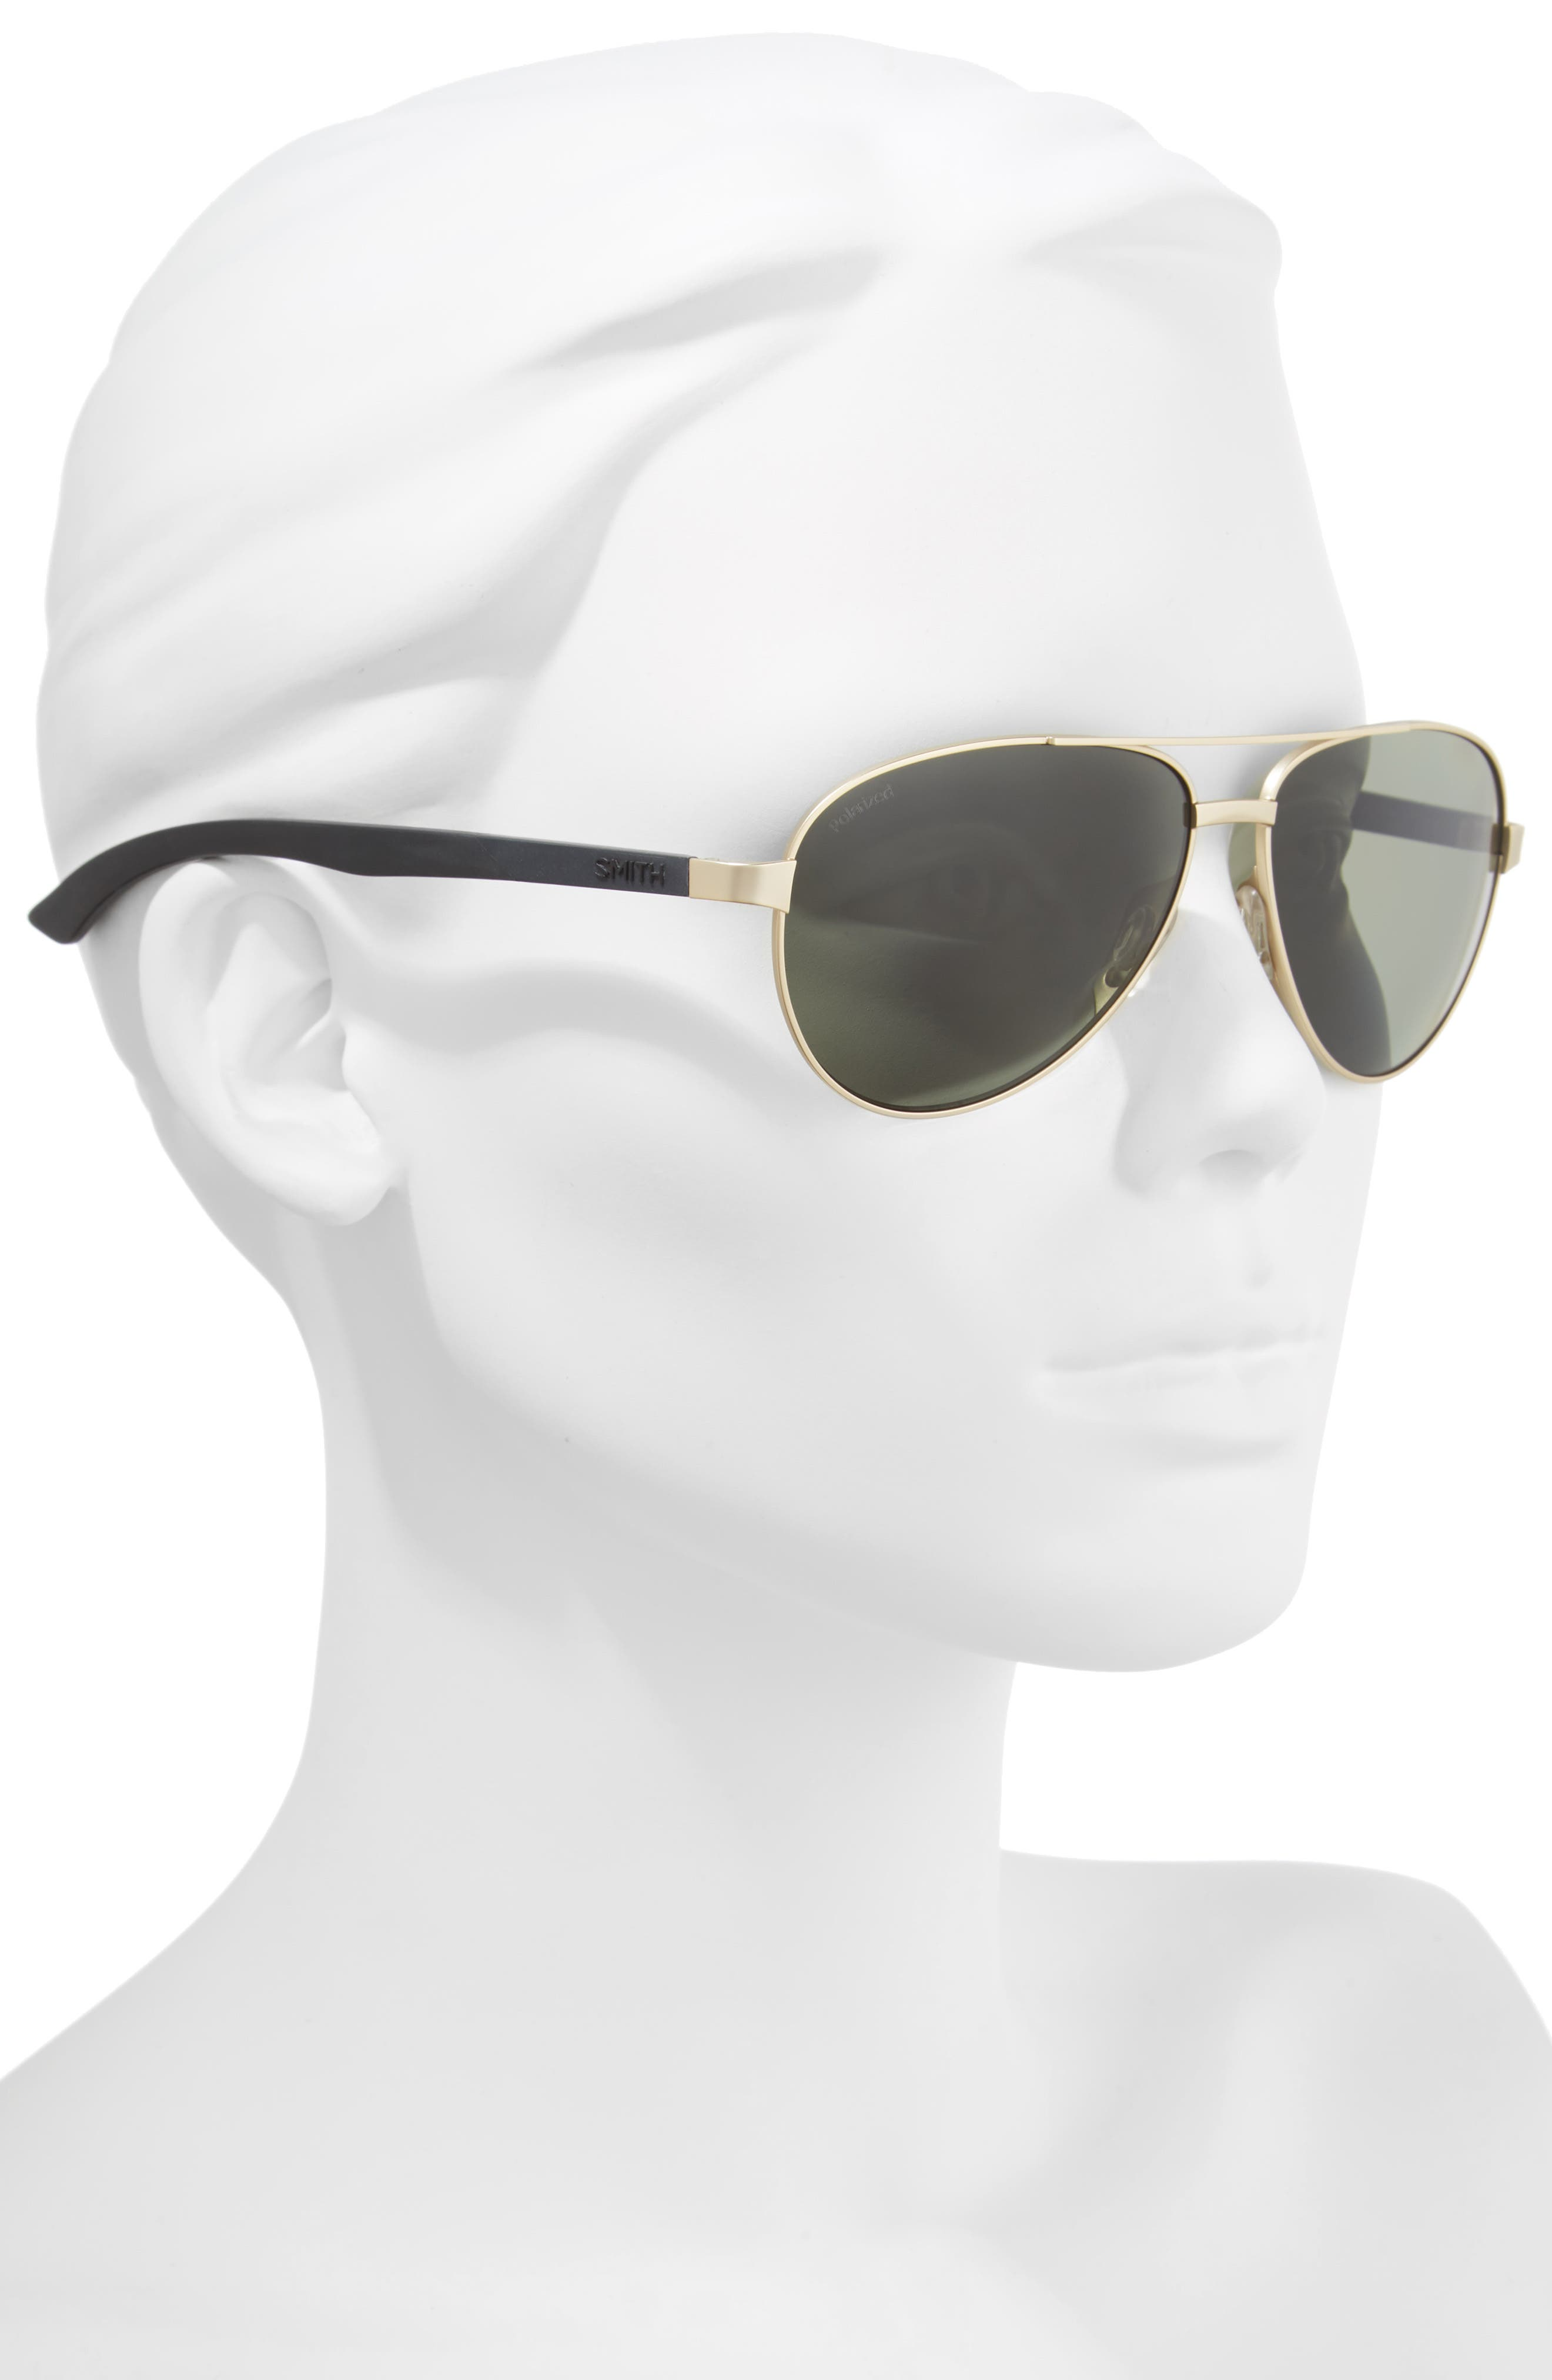 Salute 59mm Polarized Aviator Sunglasses,                             Alternate thumbnail 2, color,                             Matte Gold